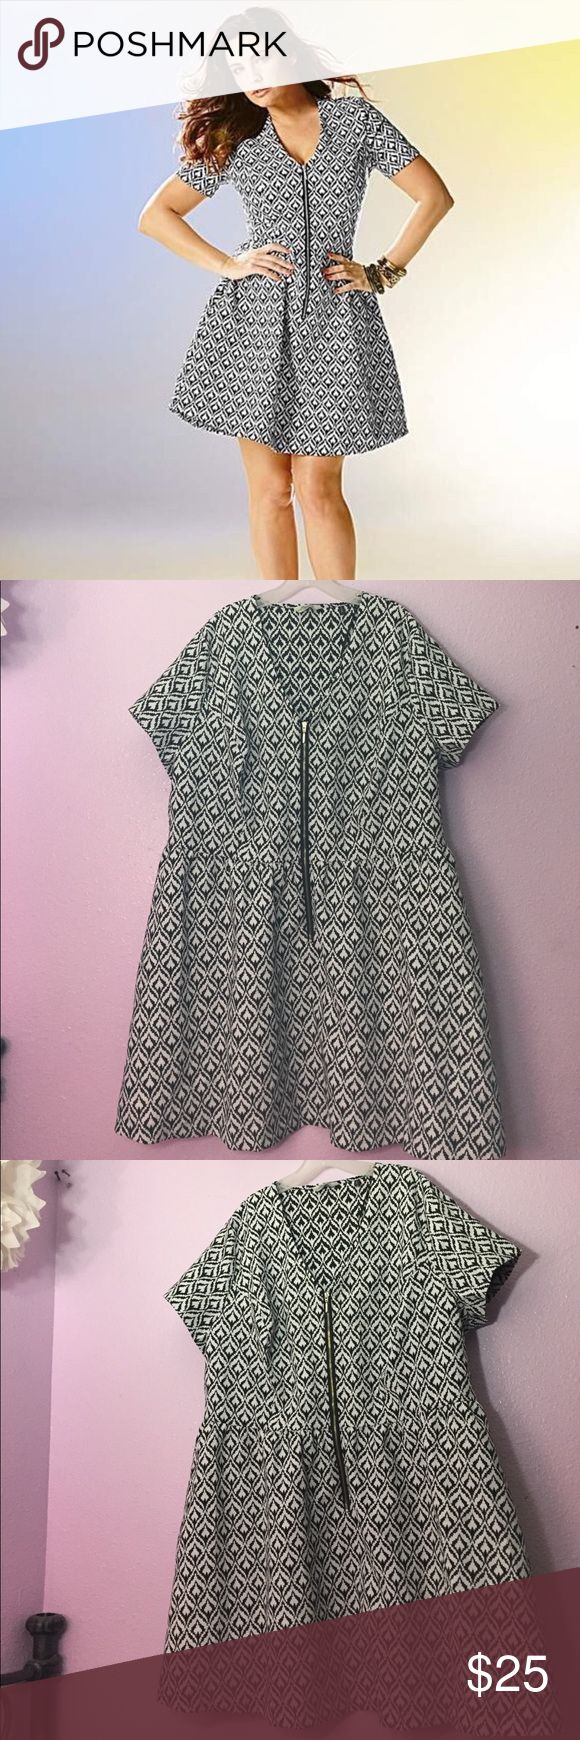 SimplyBe zipper dress Kelly Brook for SimplyBe dress. Size US20, chest is 50-54 inches and 36 inches long. Never worn, very flattering style. Simply Be Dresses